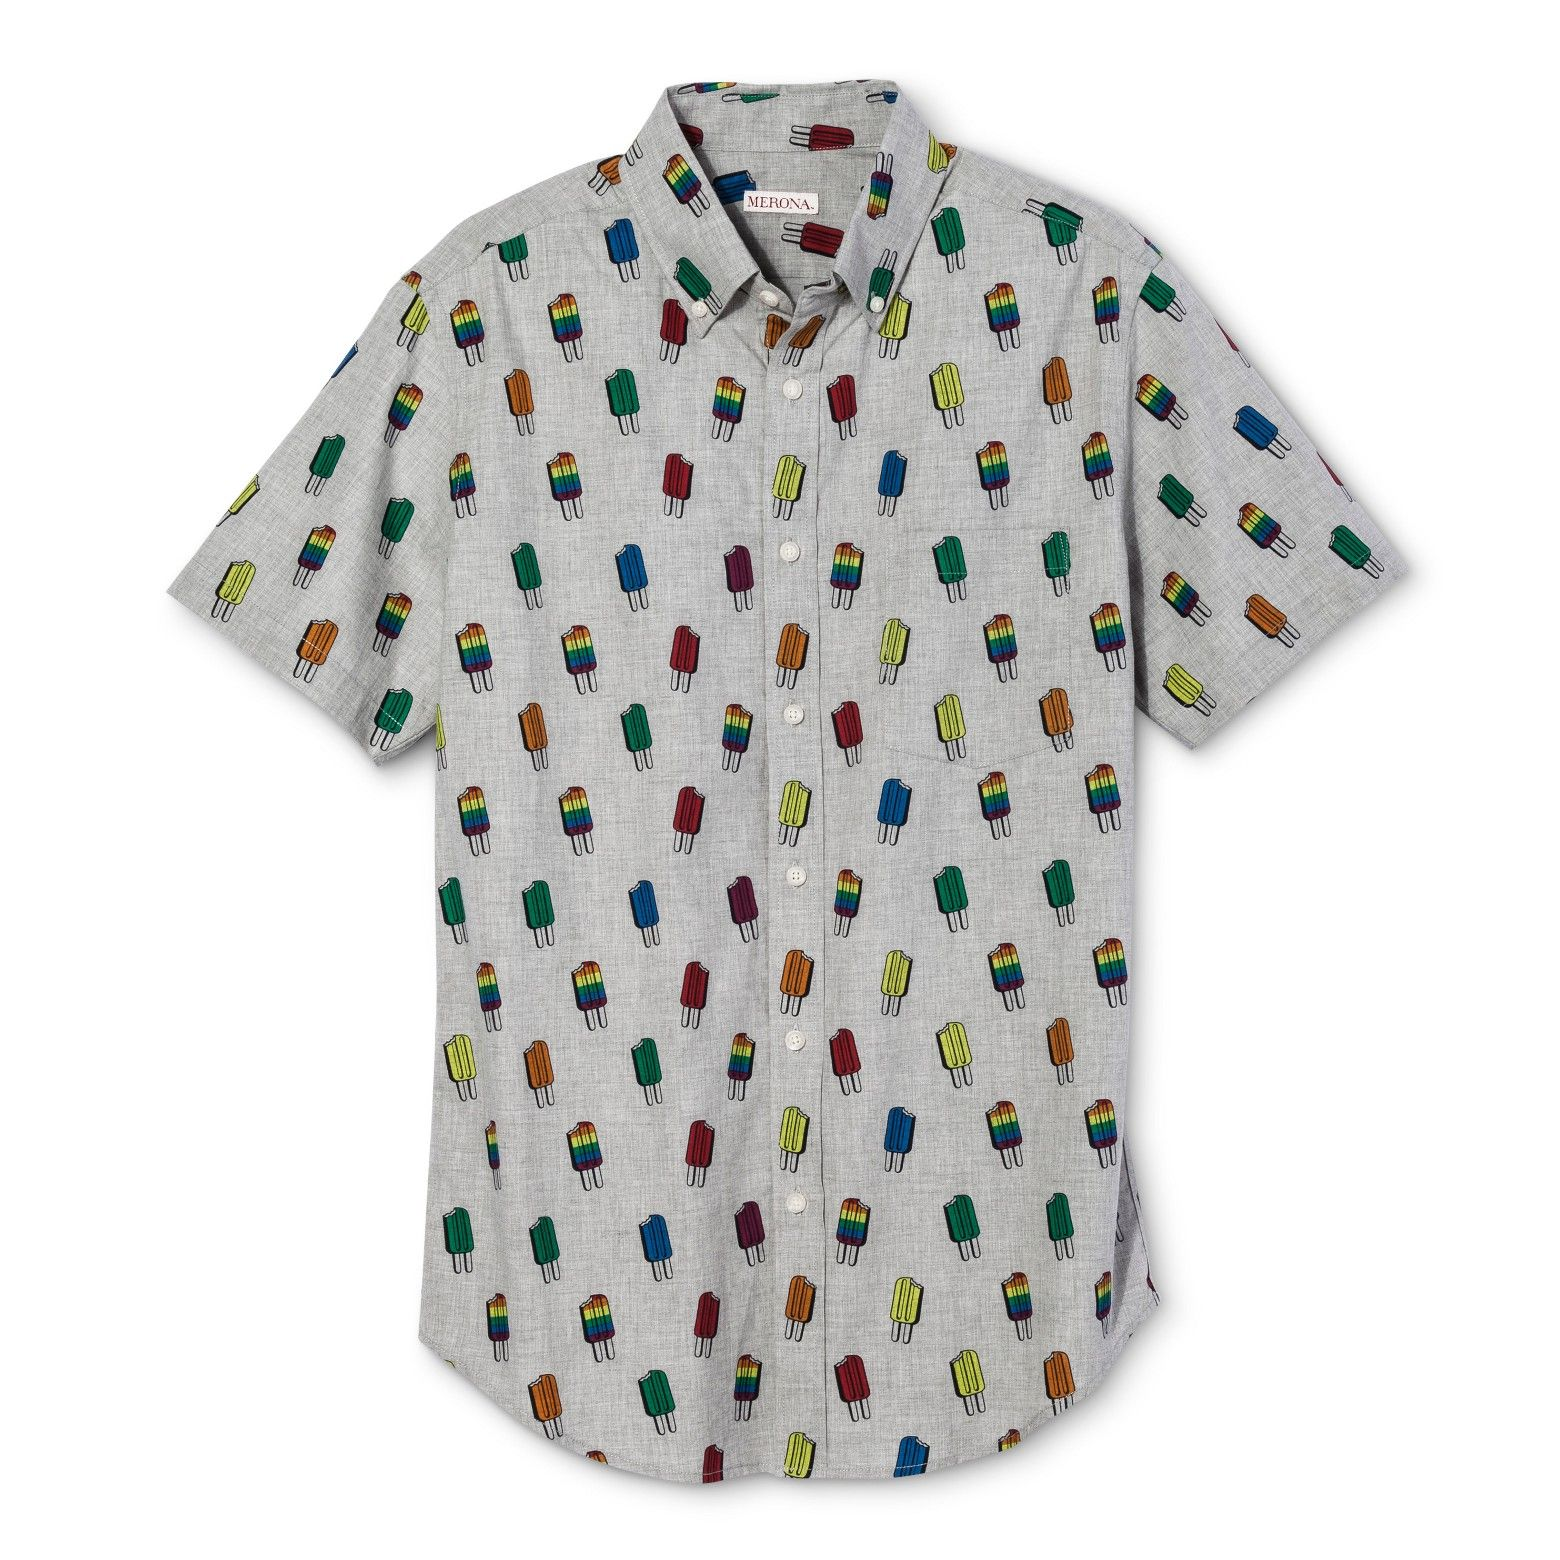 Button Up Some Sweet Style With The Pride Short Sleeve